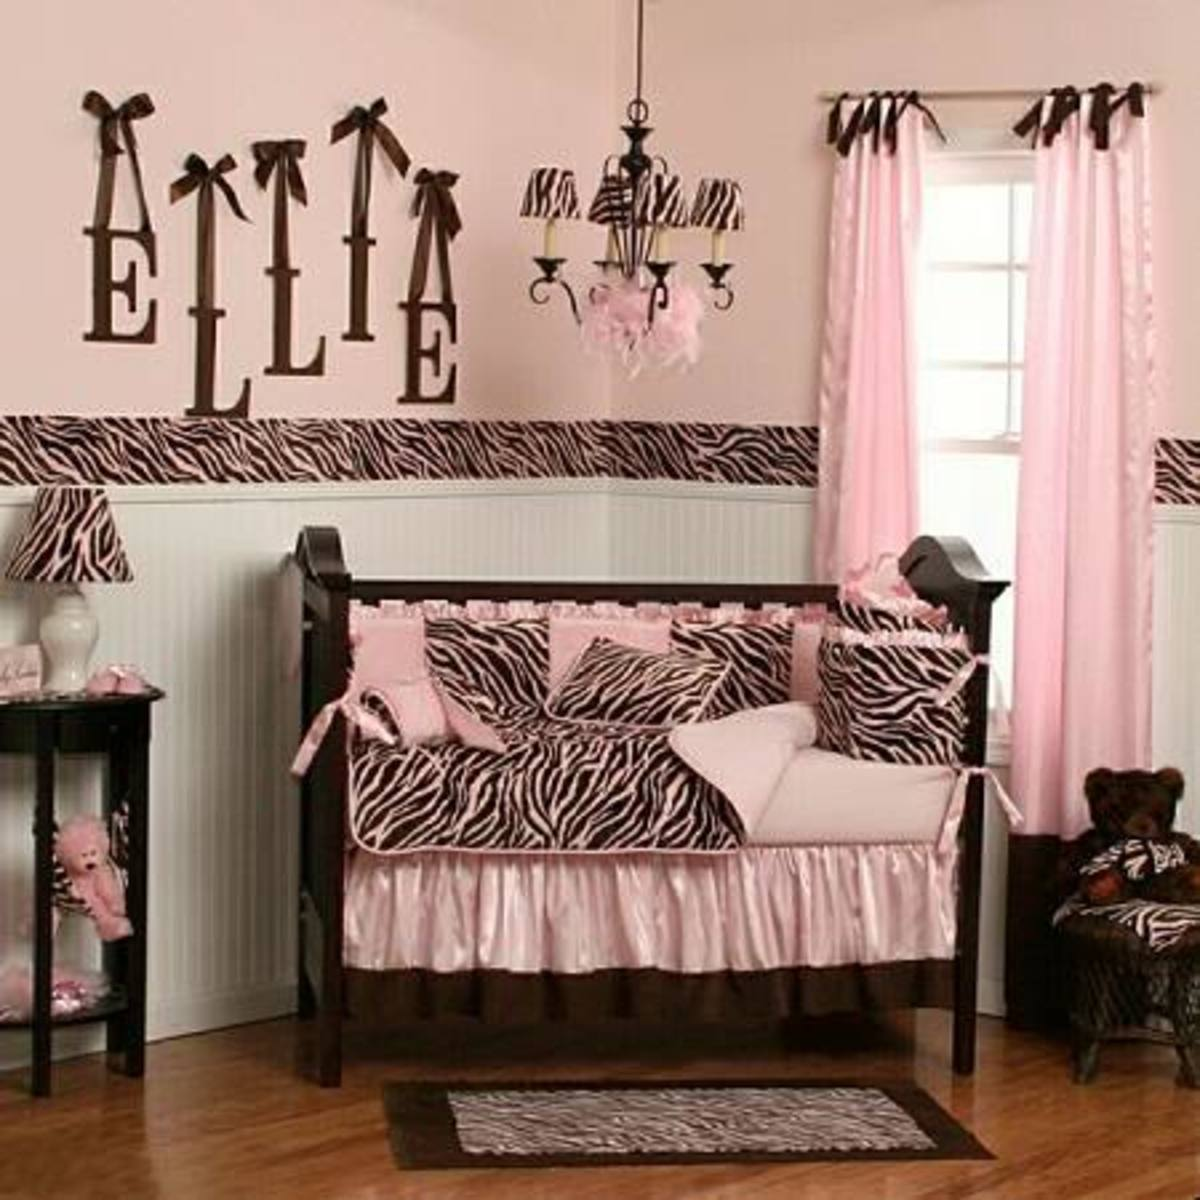 Pink and Brown Zebra baby room posted by Samarama on Baby Gaga: http://forum.baby-gaga.com/about296642.html